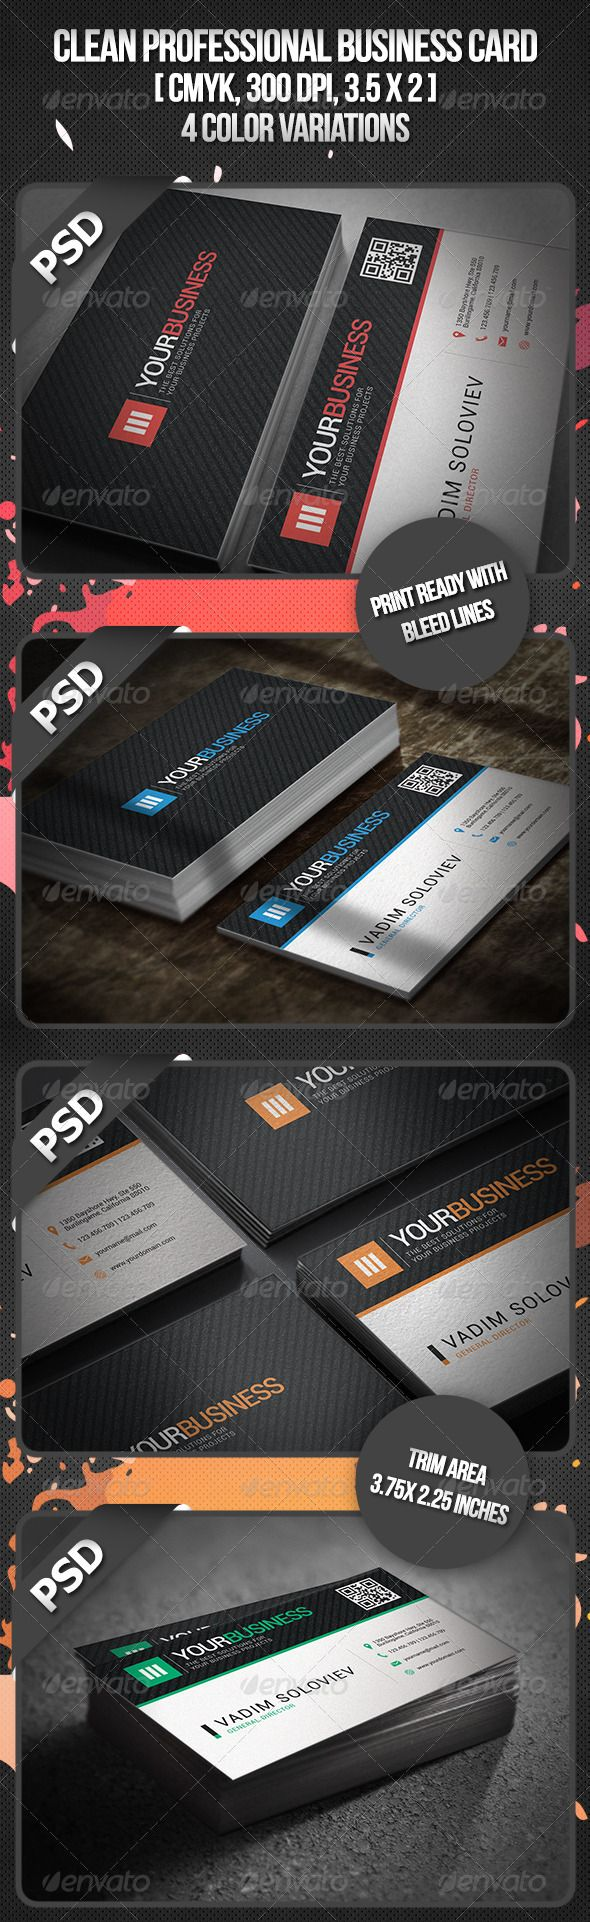 The 25 best professional business cards ideas on pinterest clean professional business card magicingreecefo Images